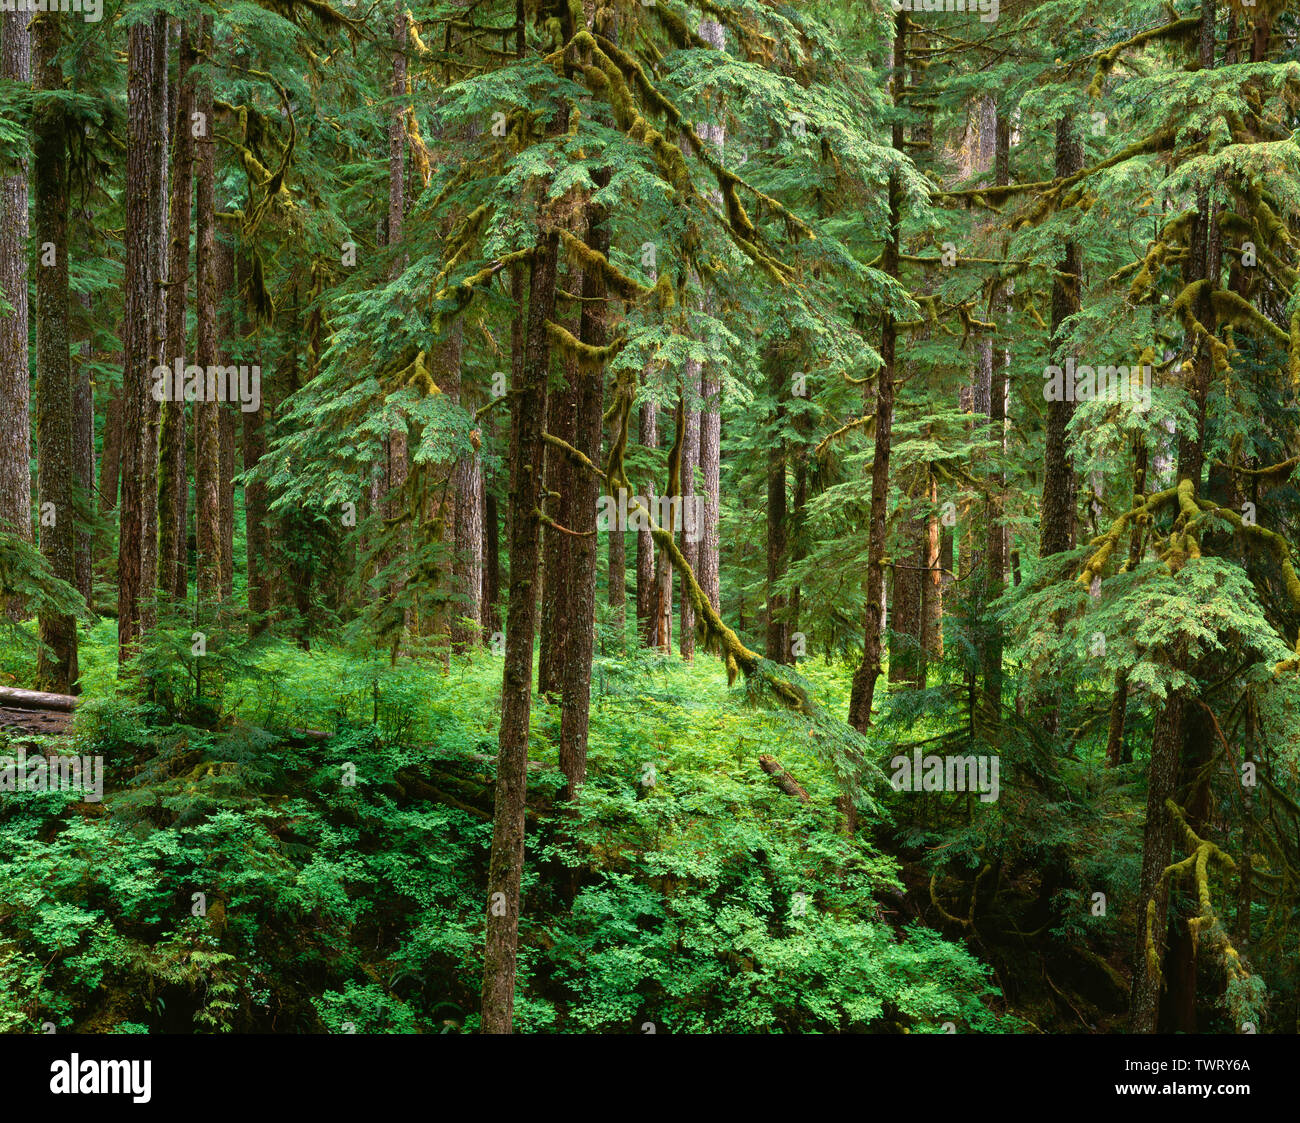 USA, Washington, Olympic National Park, Old growth forest of western hemlock (Tsuga heterophylla) in Sol Duc Valley. Stock Photo